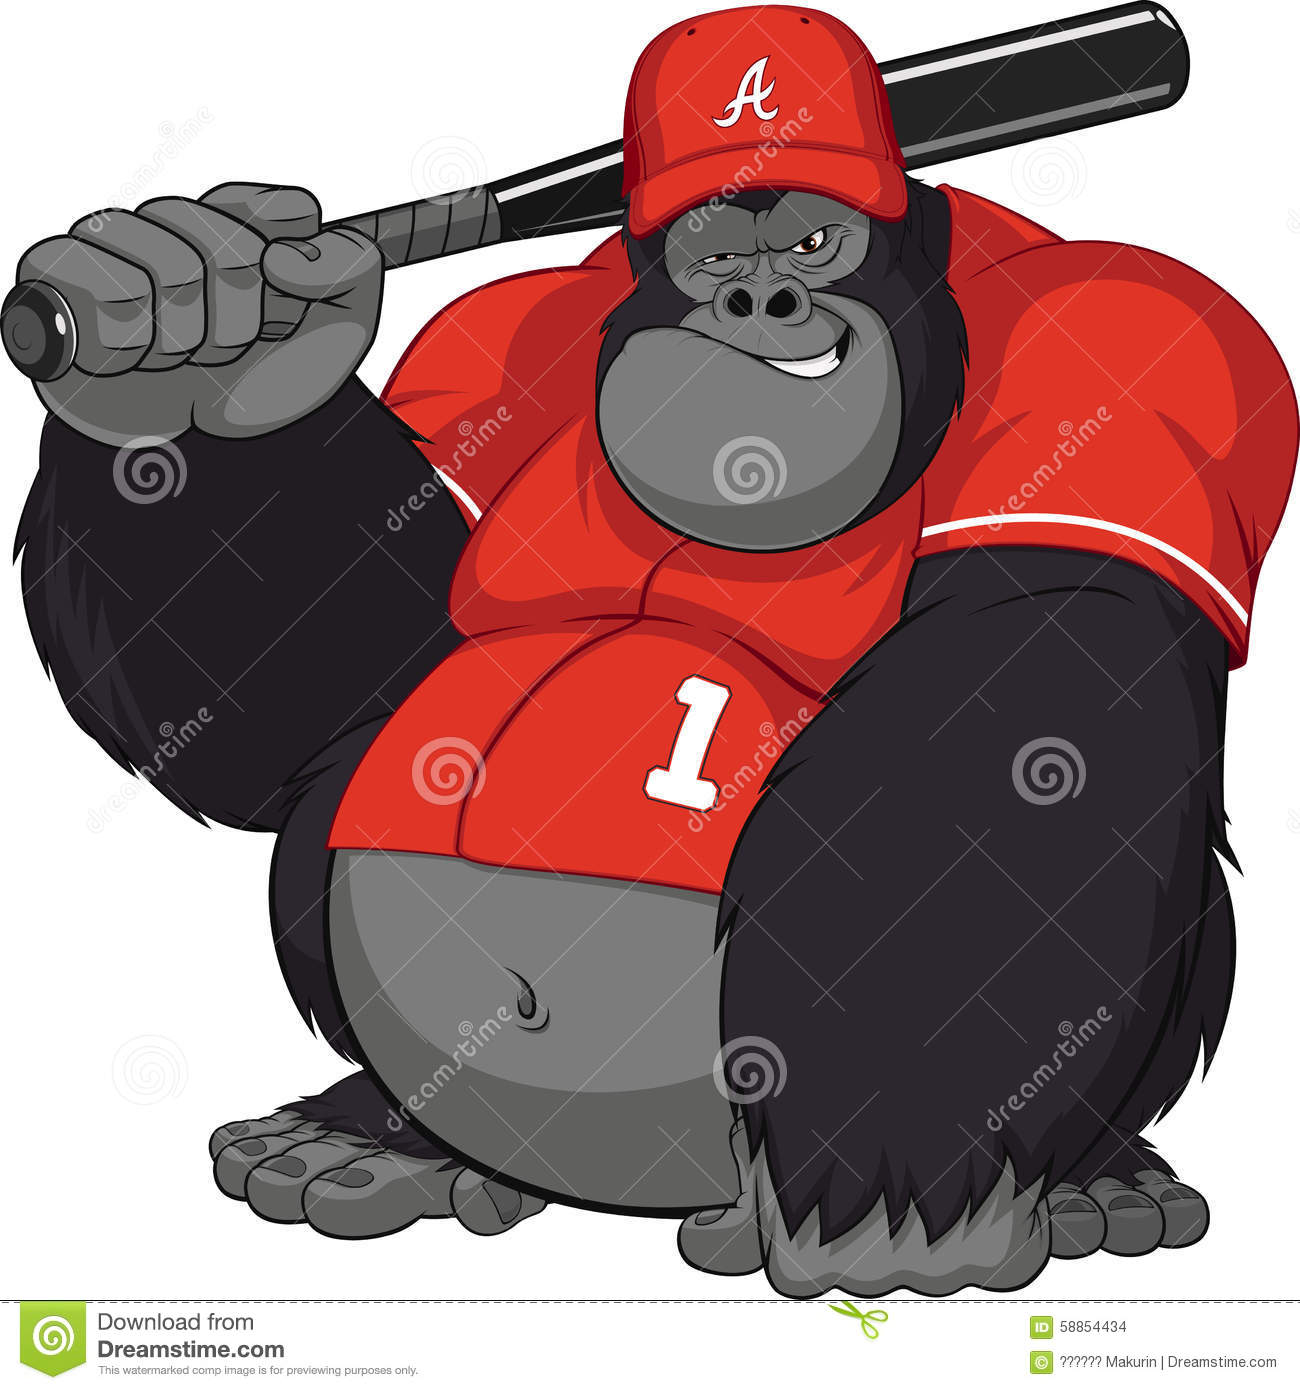 Vector illustration, funny gorilla with a baseball bat.